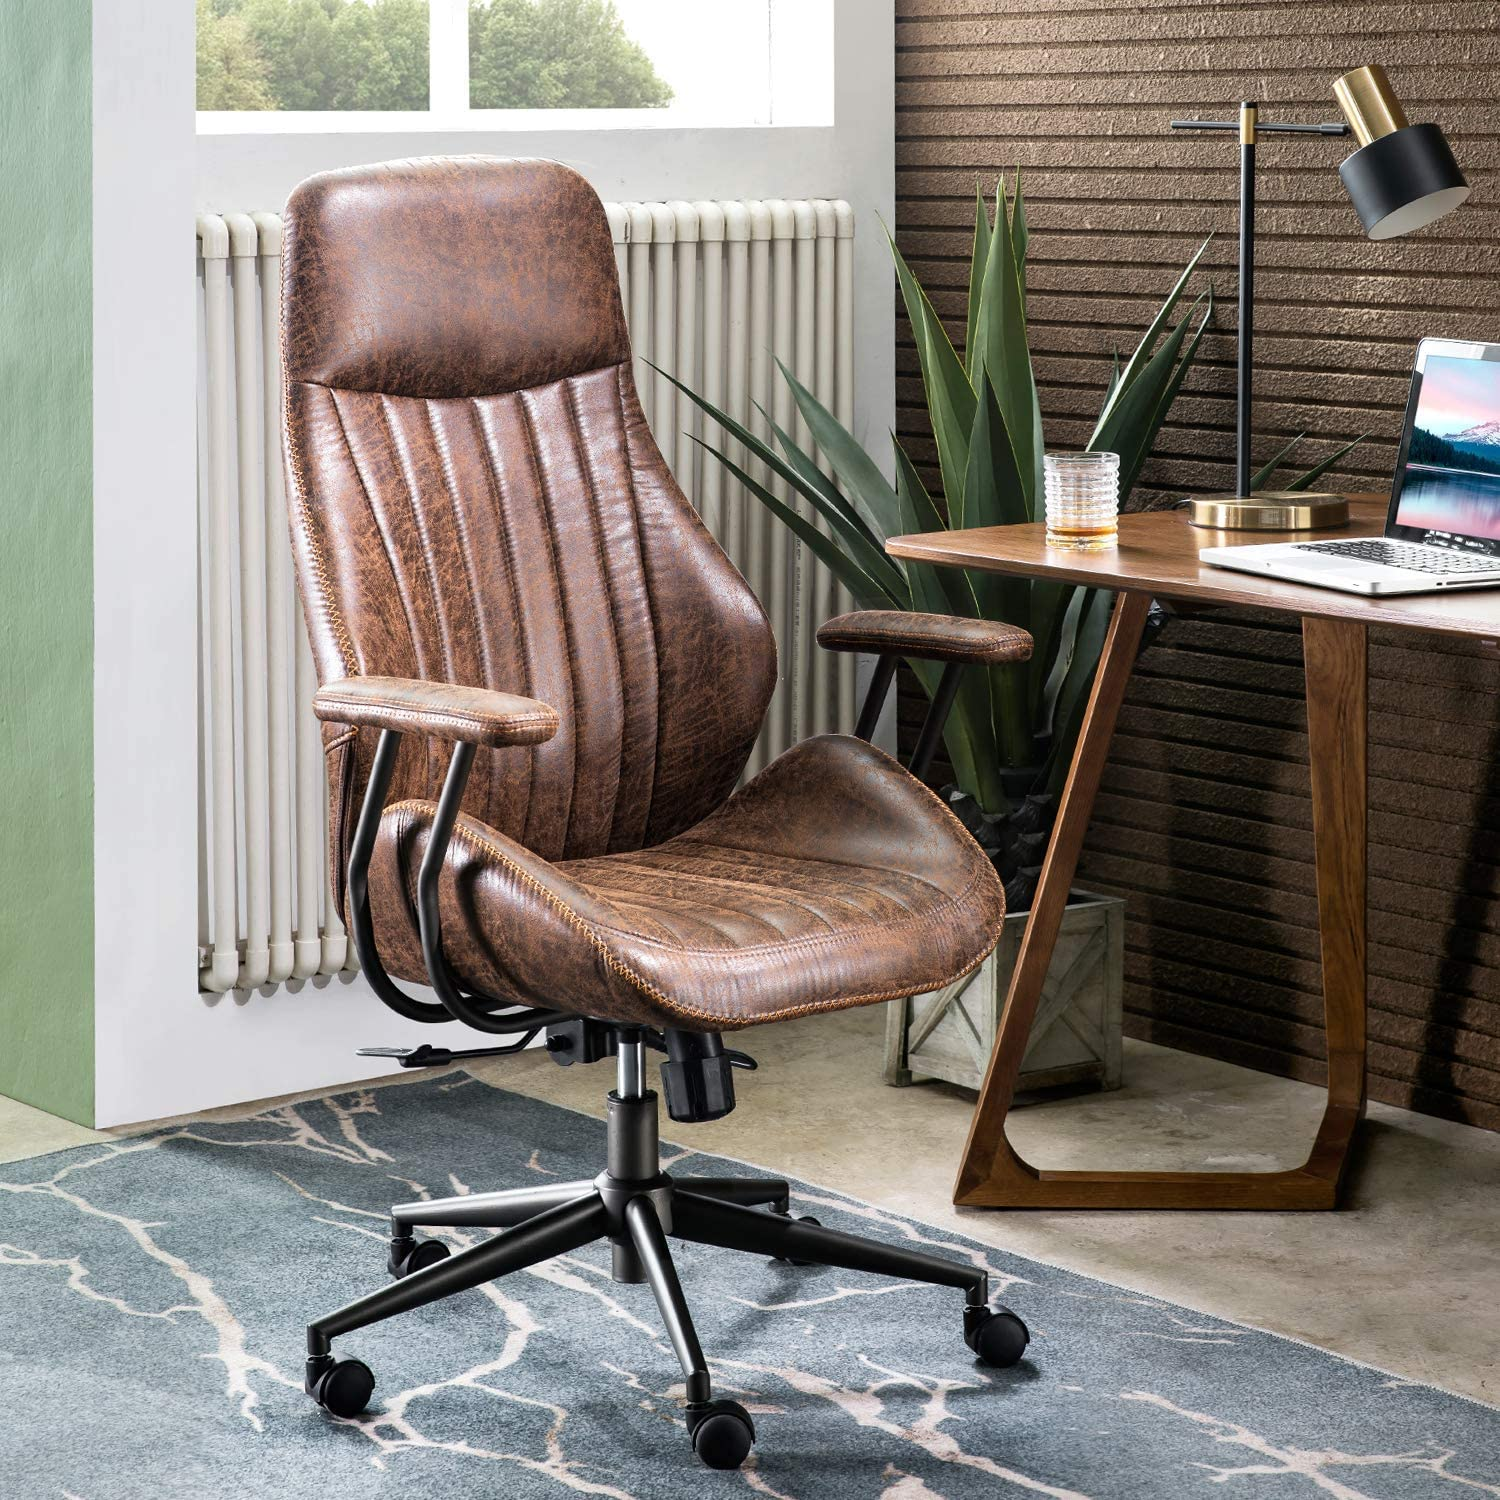 ovios Ergonomic Office Chair,Modern Computer Desk Chair,high Back Suede Fabric Desk Chair with Lumbar Support for Executive or Home Office